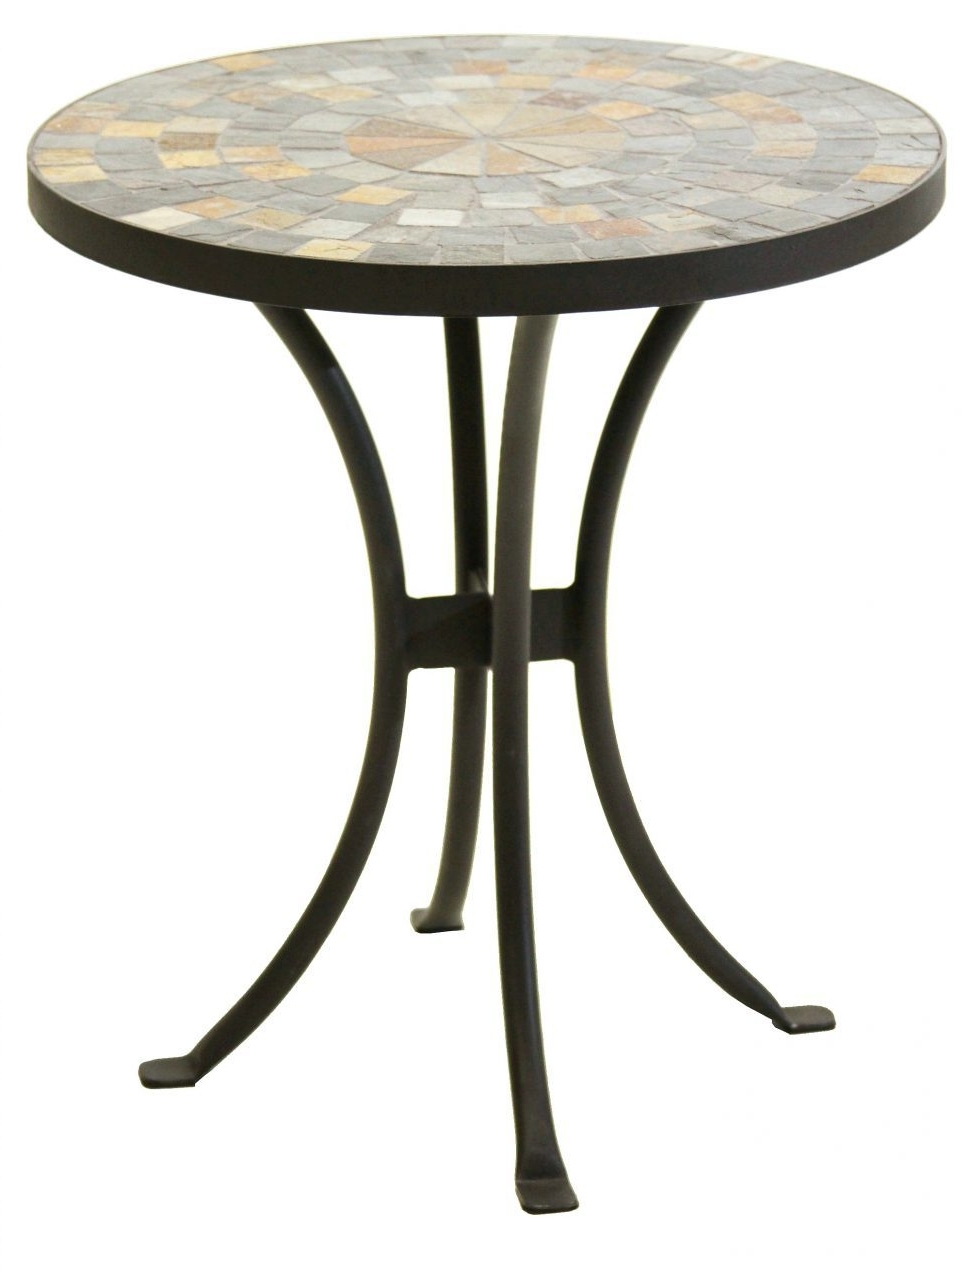 Most Up To Date Patio Umbrellas With Accent Table Intended For Arresting Umbrella Hole Small Patio Table With As Wells As Patio (View 11 of 20)